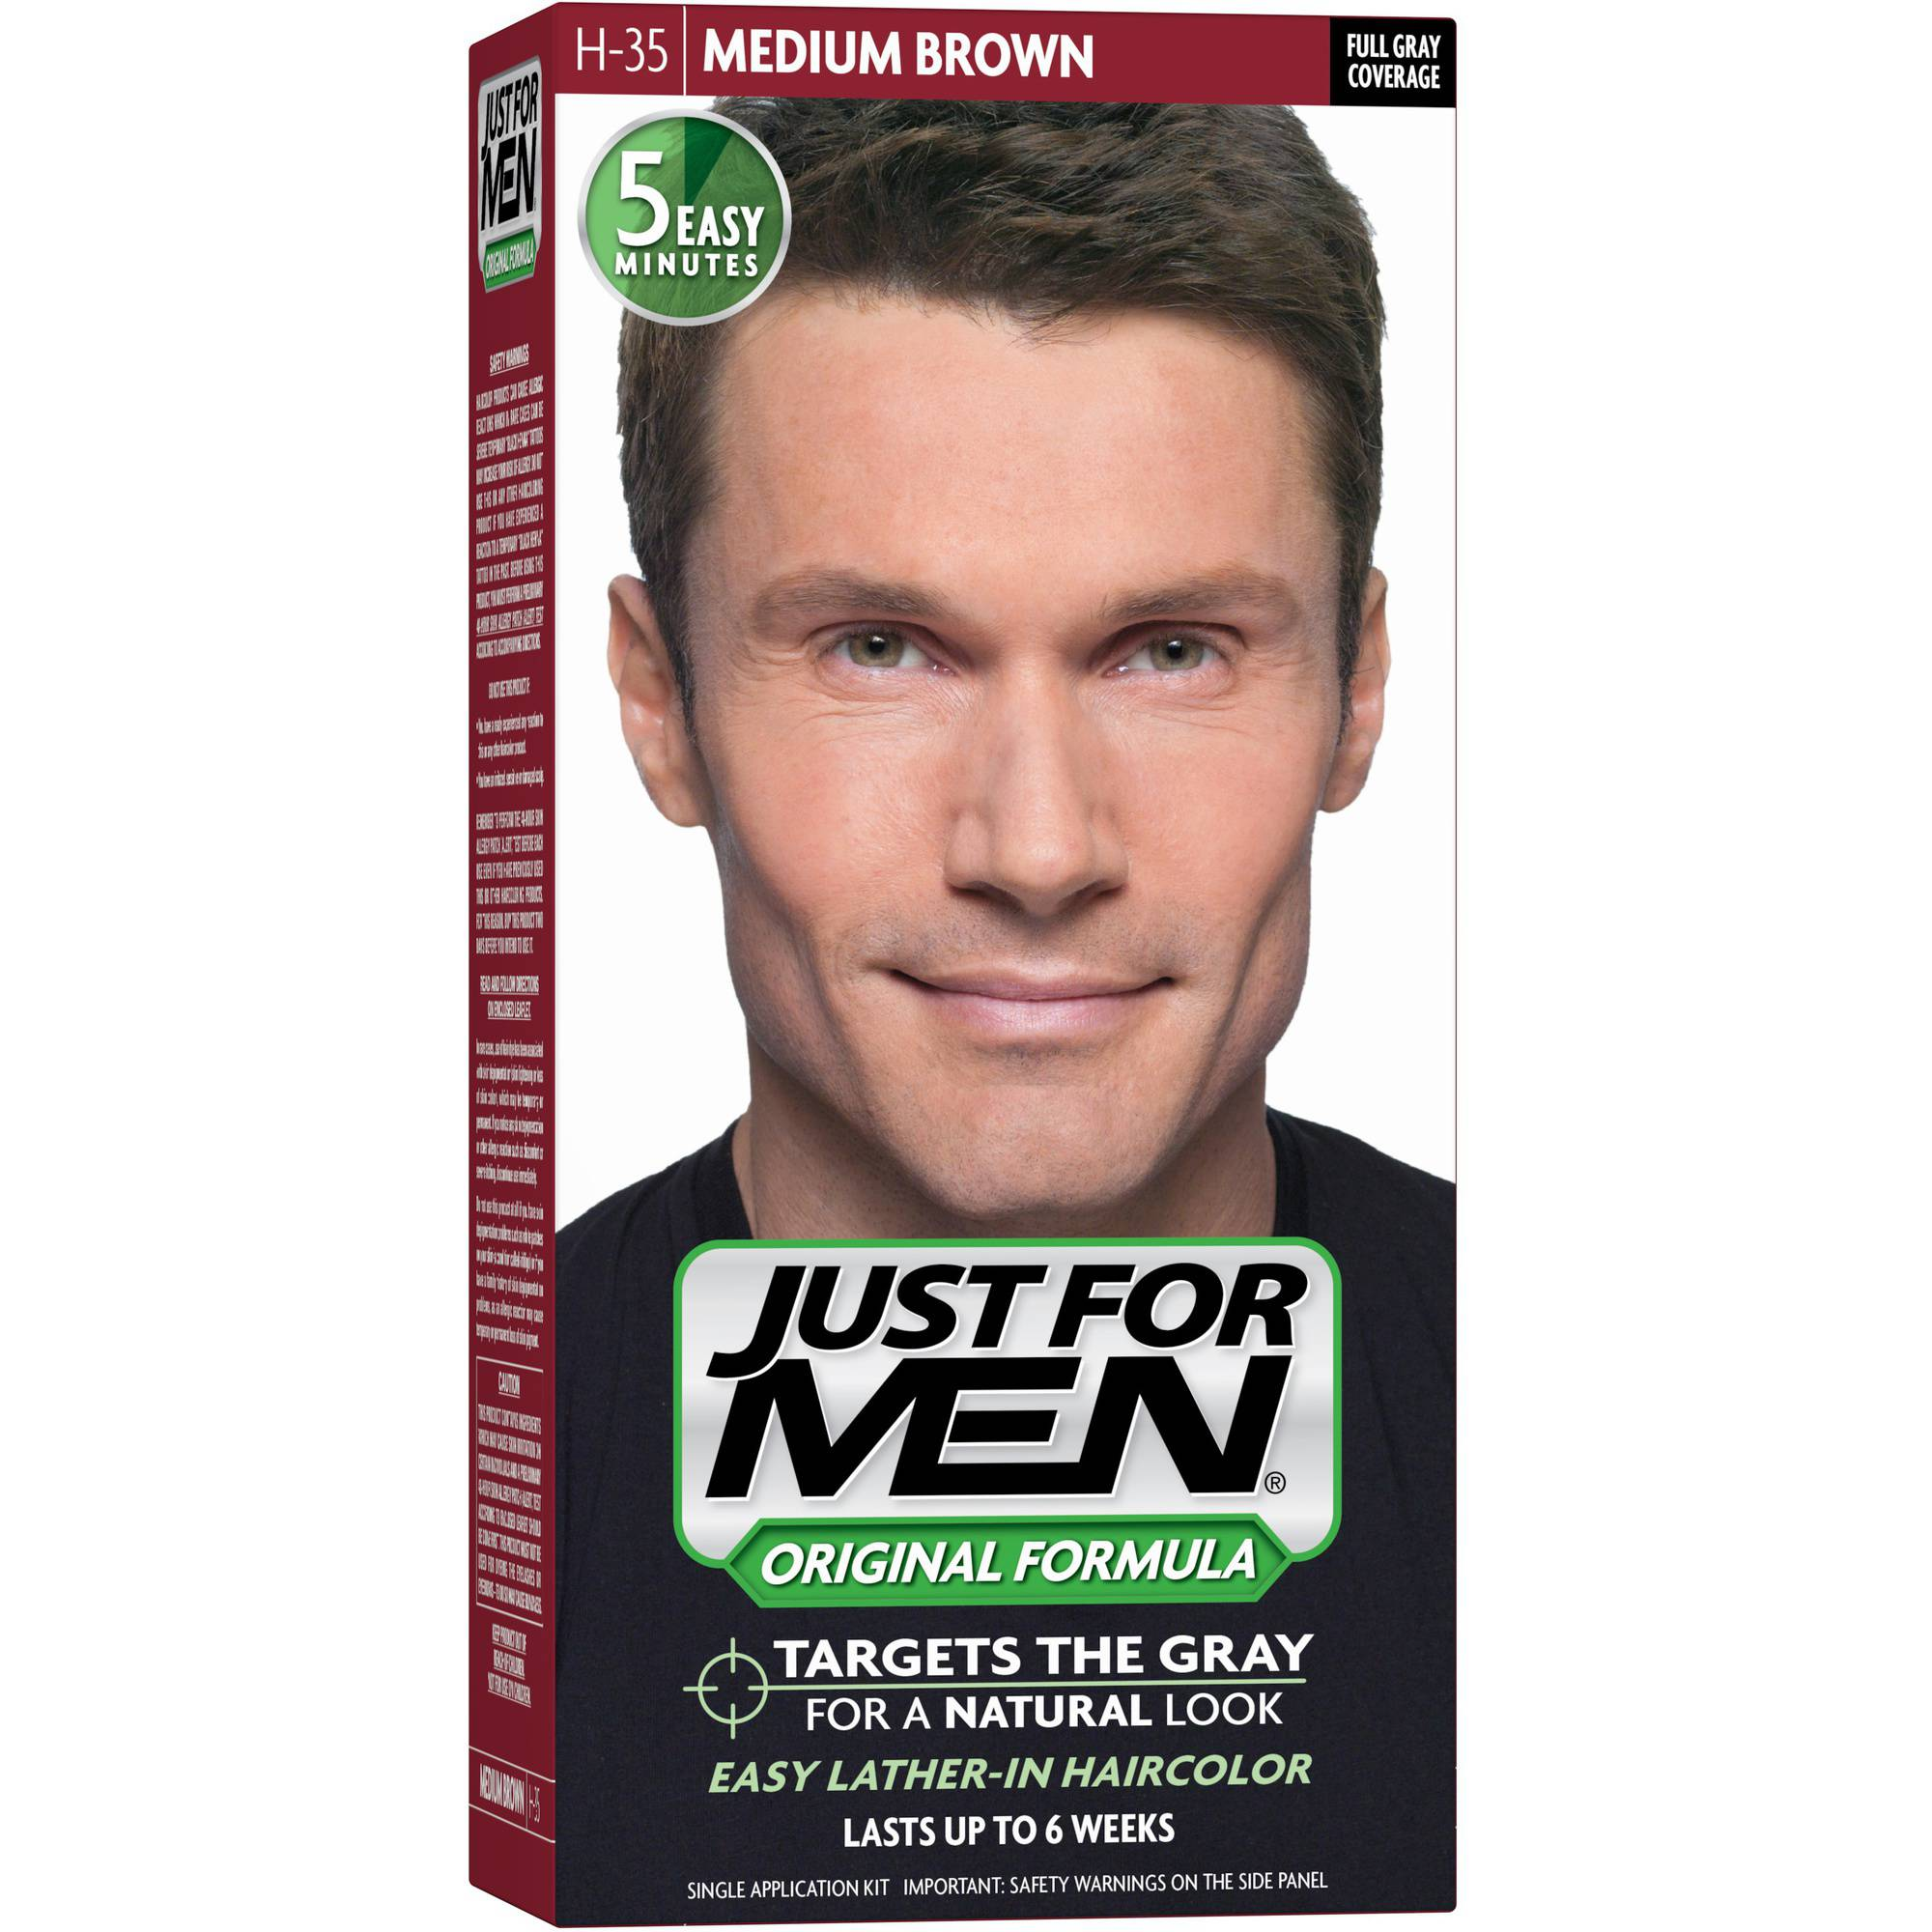 Just For Men Shampoo, Medium Brown